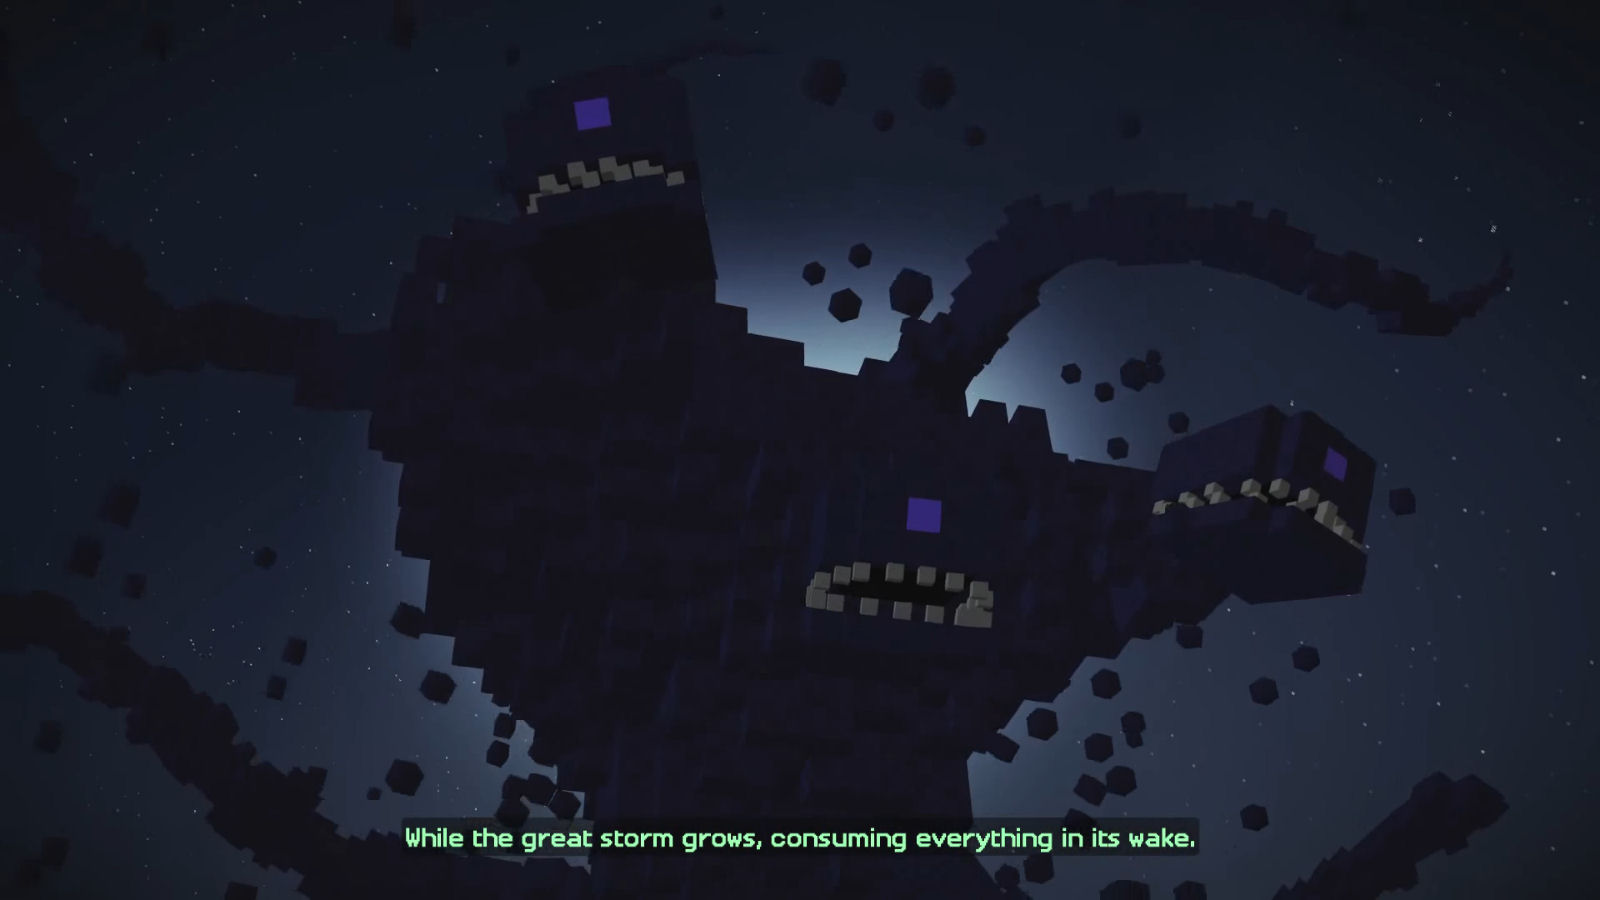 578-minecraft-story-mode-episode-2-screenshot-1445836196